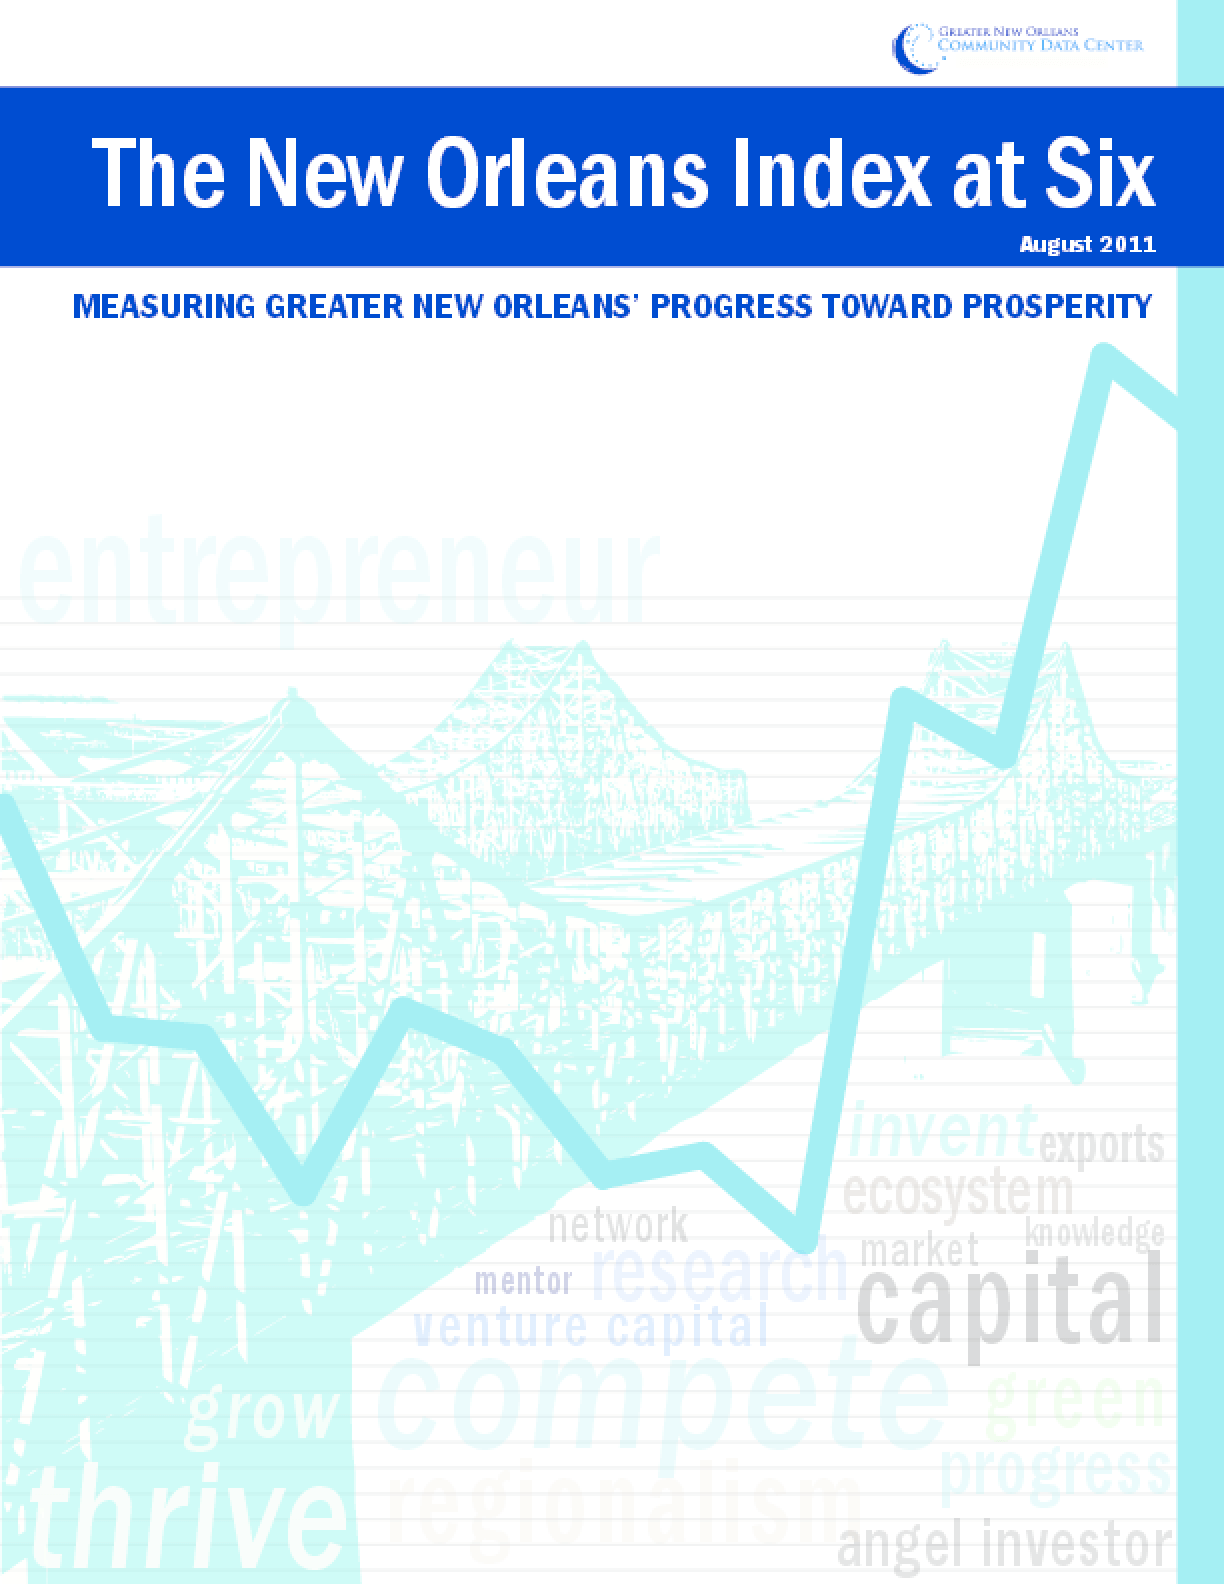 The New Orleans Index at Six: Measuring Greater New Orleans' Progress Toward Prosperity